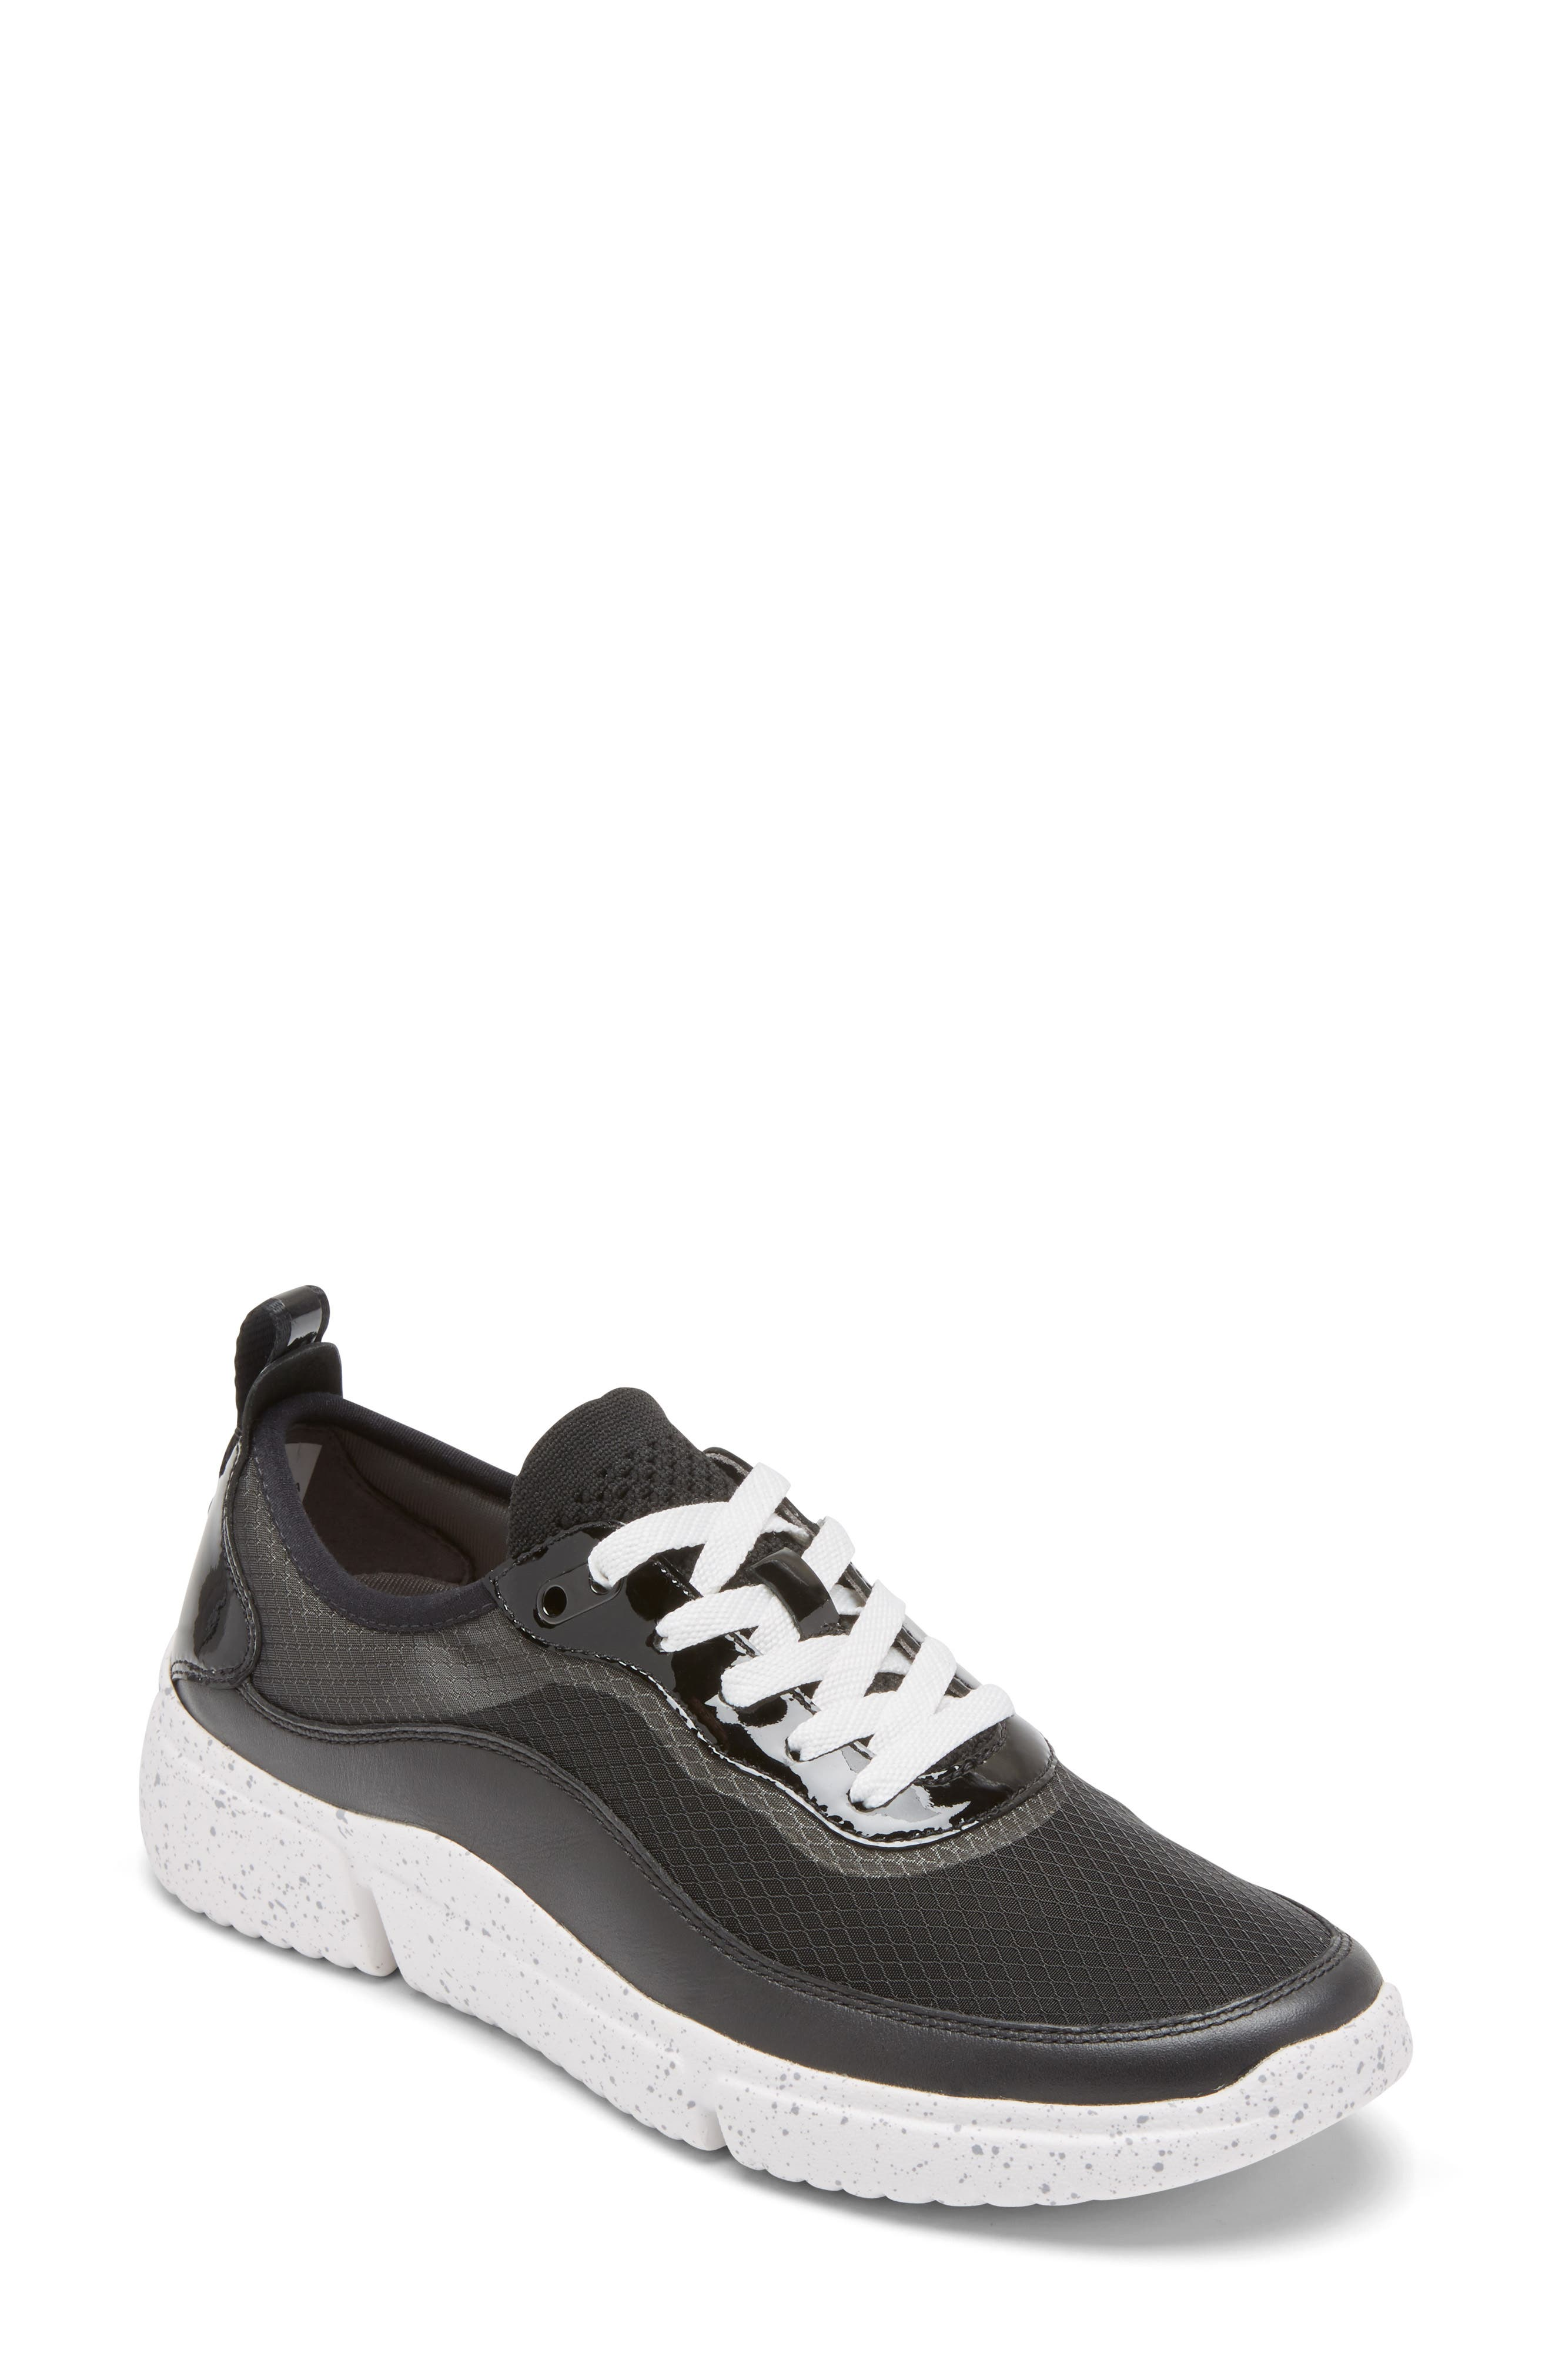 Image of Rockport R-Evolution Trainer Sneaker - Wide Width Available